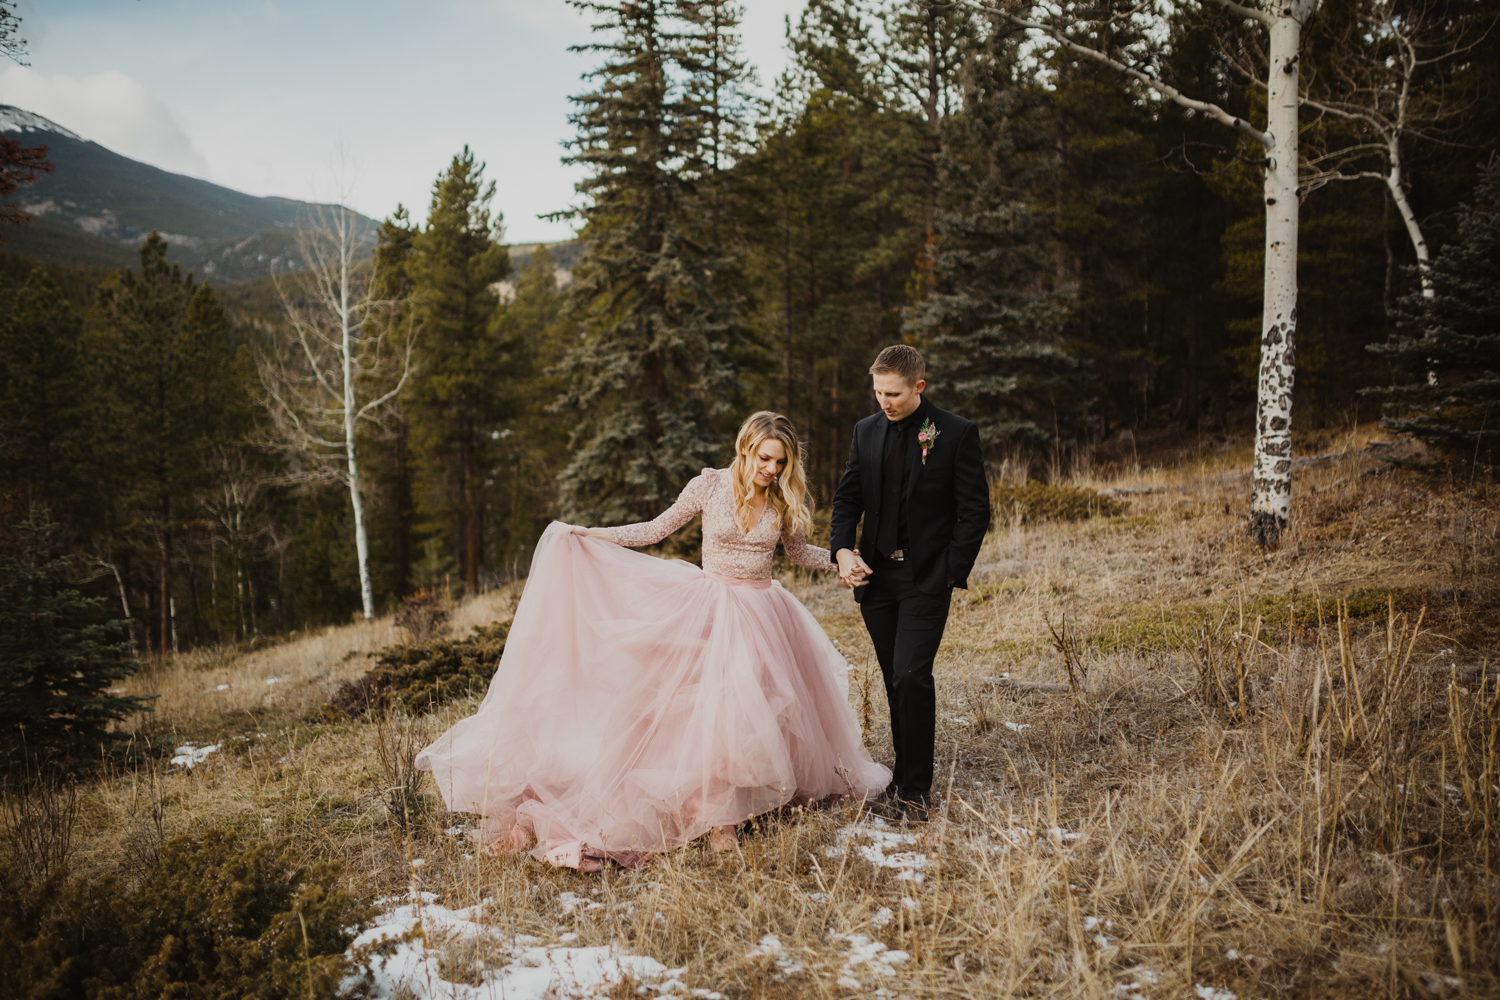 Ashleecrowdenphotography-coloradoweddingphotographer-evergreenweddingphotographer-coloradoelopementphotographer (1 of 1)-4.jpg